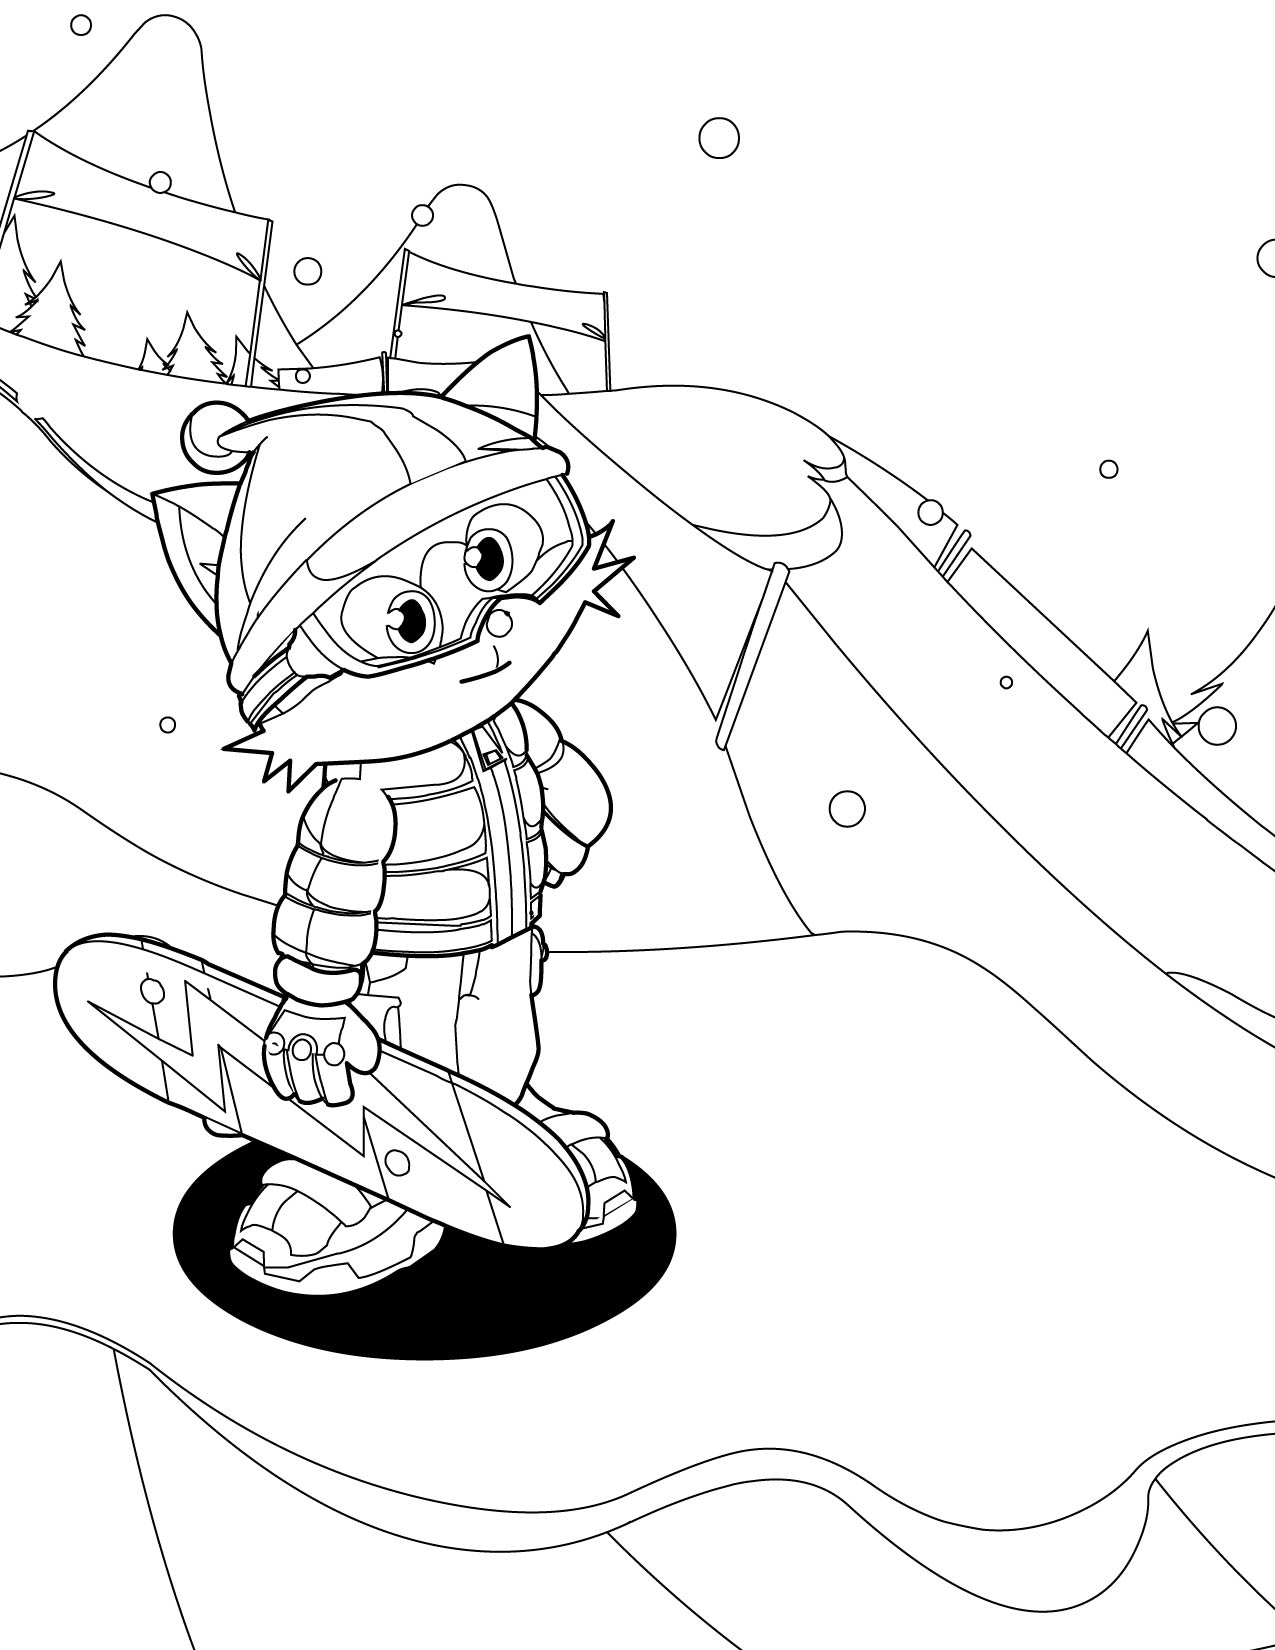 Snowboarding Coloring Pages At Getdrawings